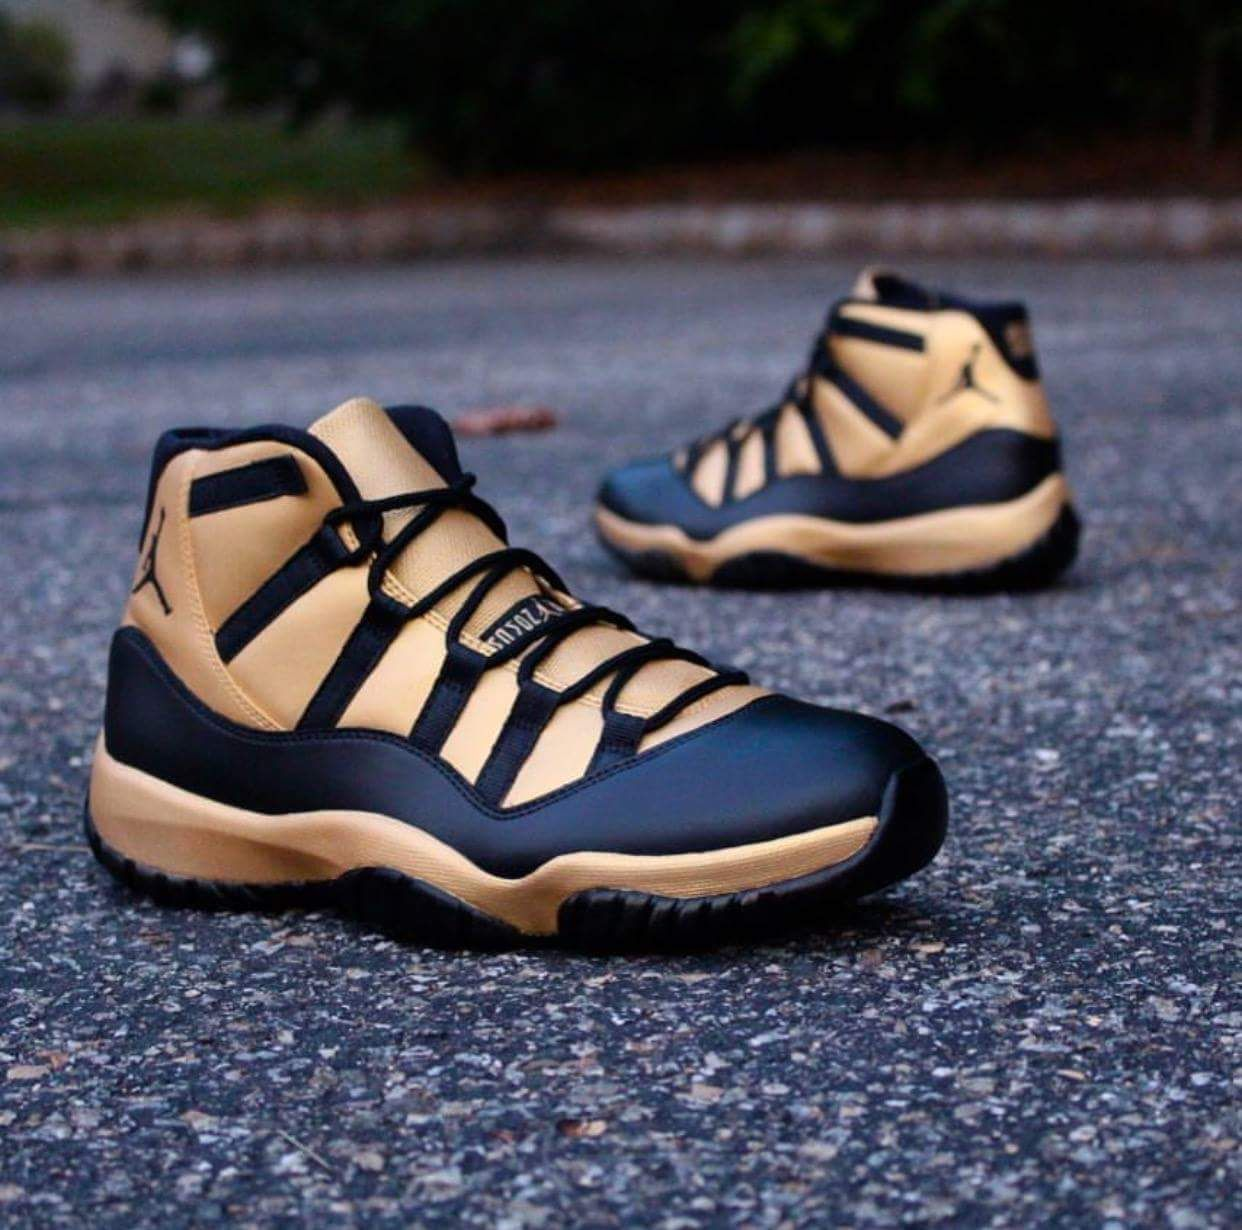 c8a3951696e3 Air jordan 11 custom black gold